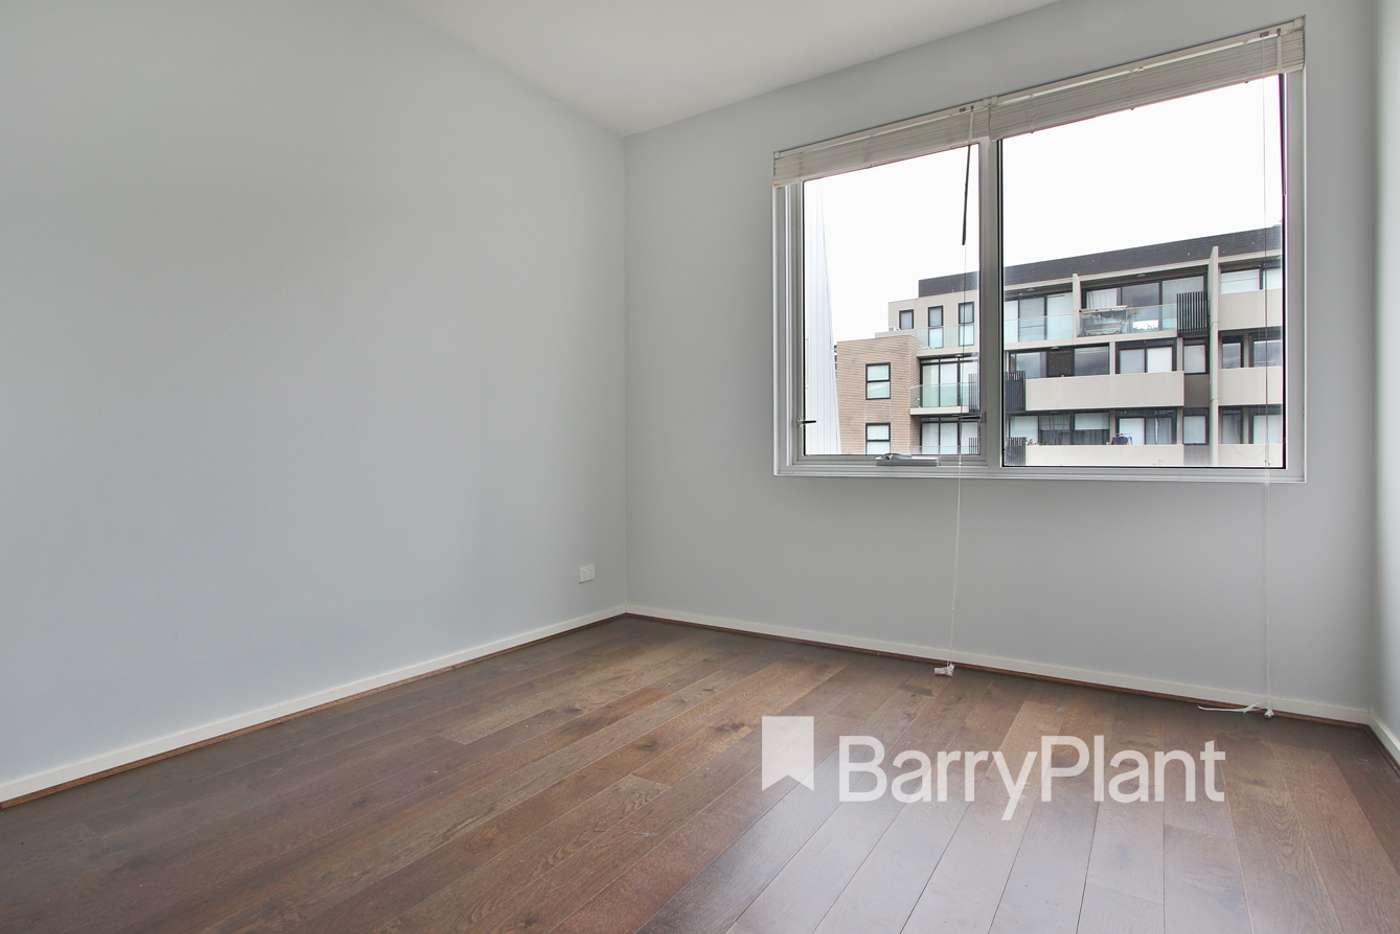 Seventh view of Homely apartment listing, 214/8 Berkeley Street, Doncaster VIC 3108